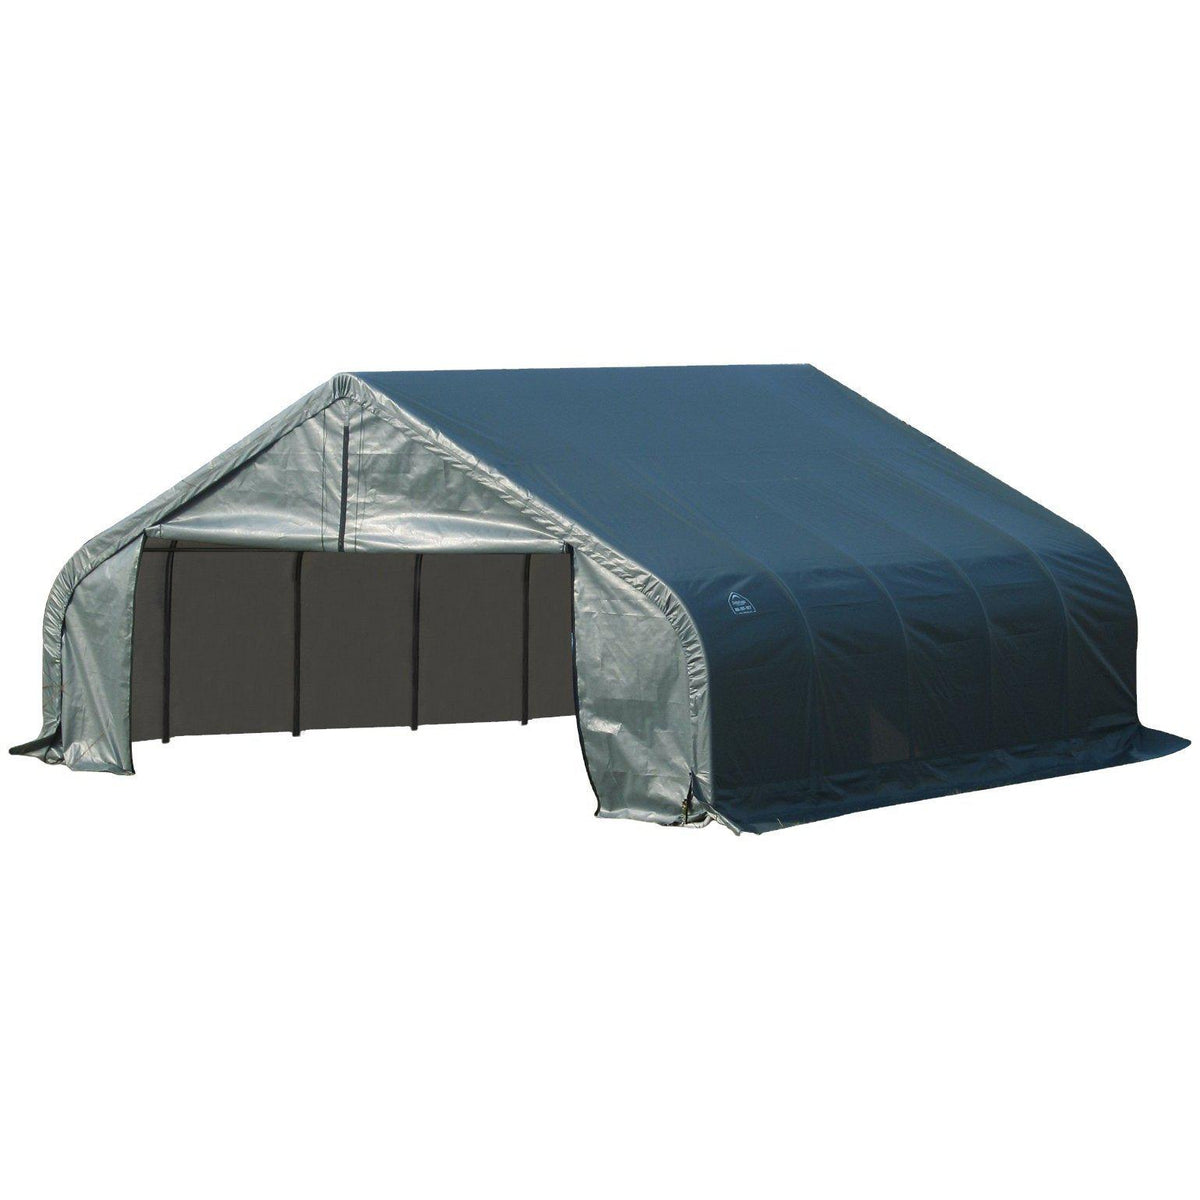 ShelterLogic 80006 Green 18'x28'x10' Peak Style Shelter